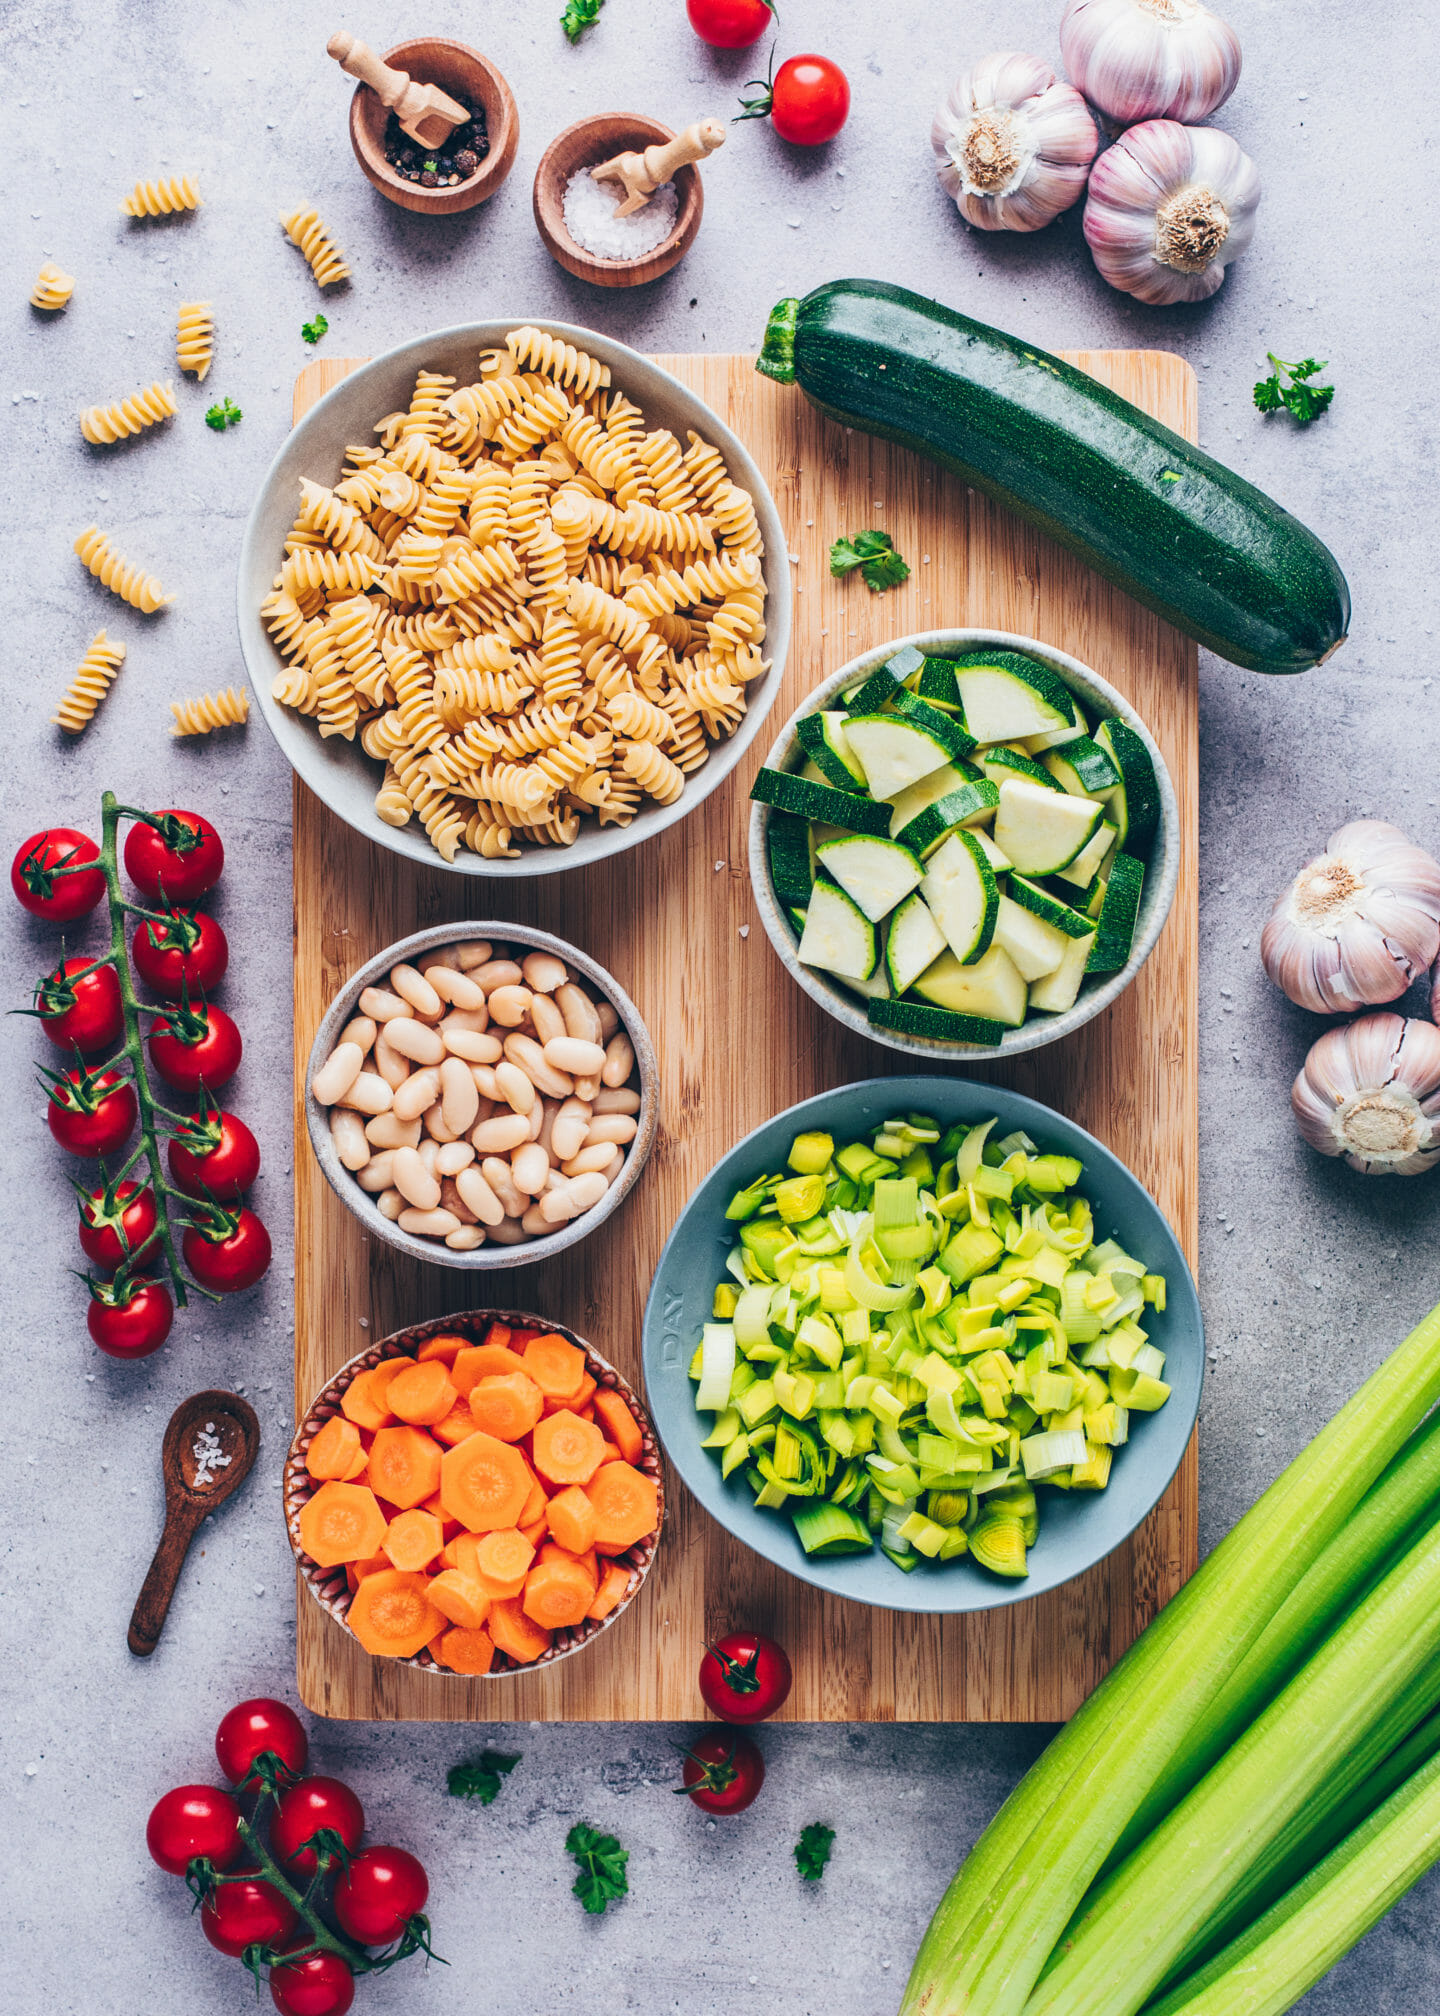 Ingredients for minestrone soup ( zucchini, carrots, leek, tomatoes, white beans and gluten-free fusilli pasta)